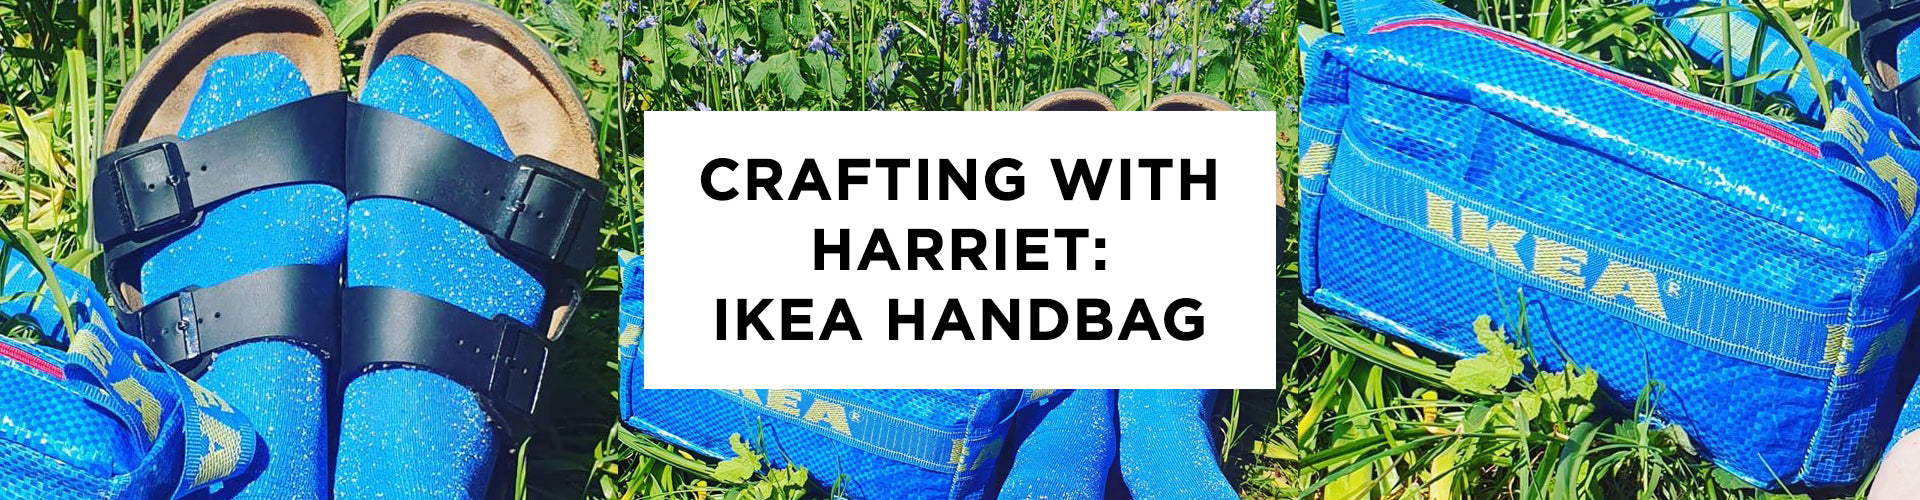 Crafting at Home With Harriet: IKEA bag